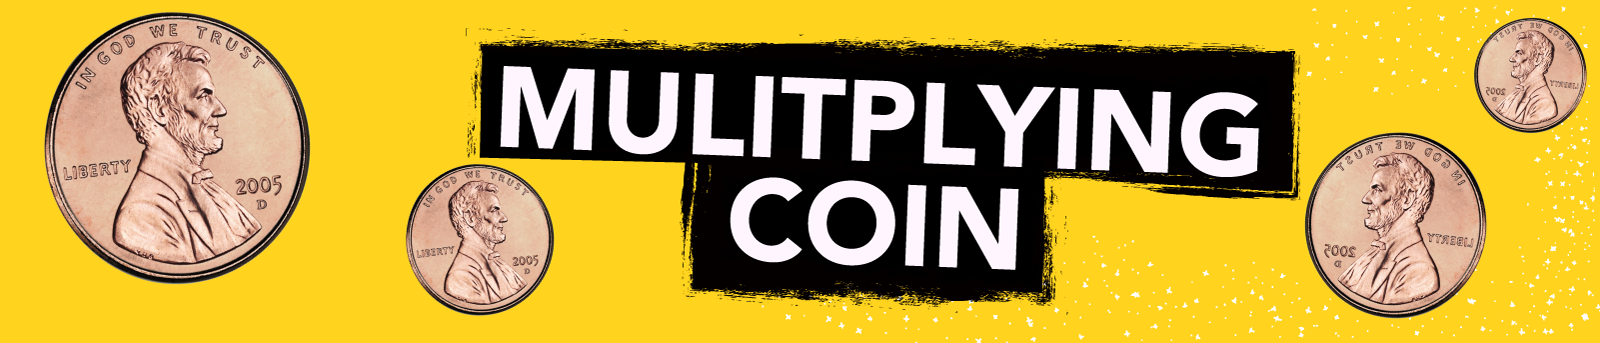 Multiplying Coin